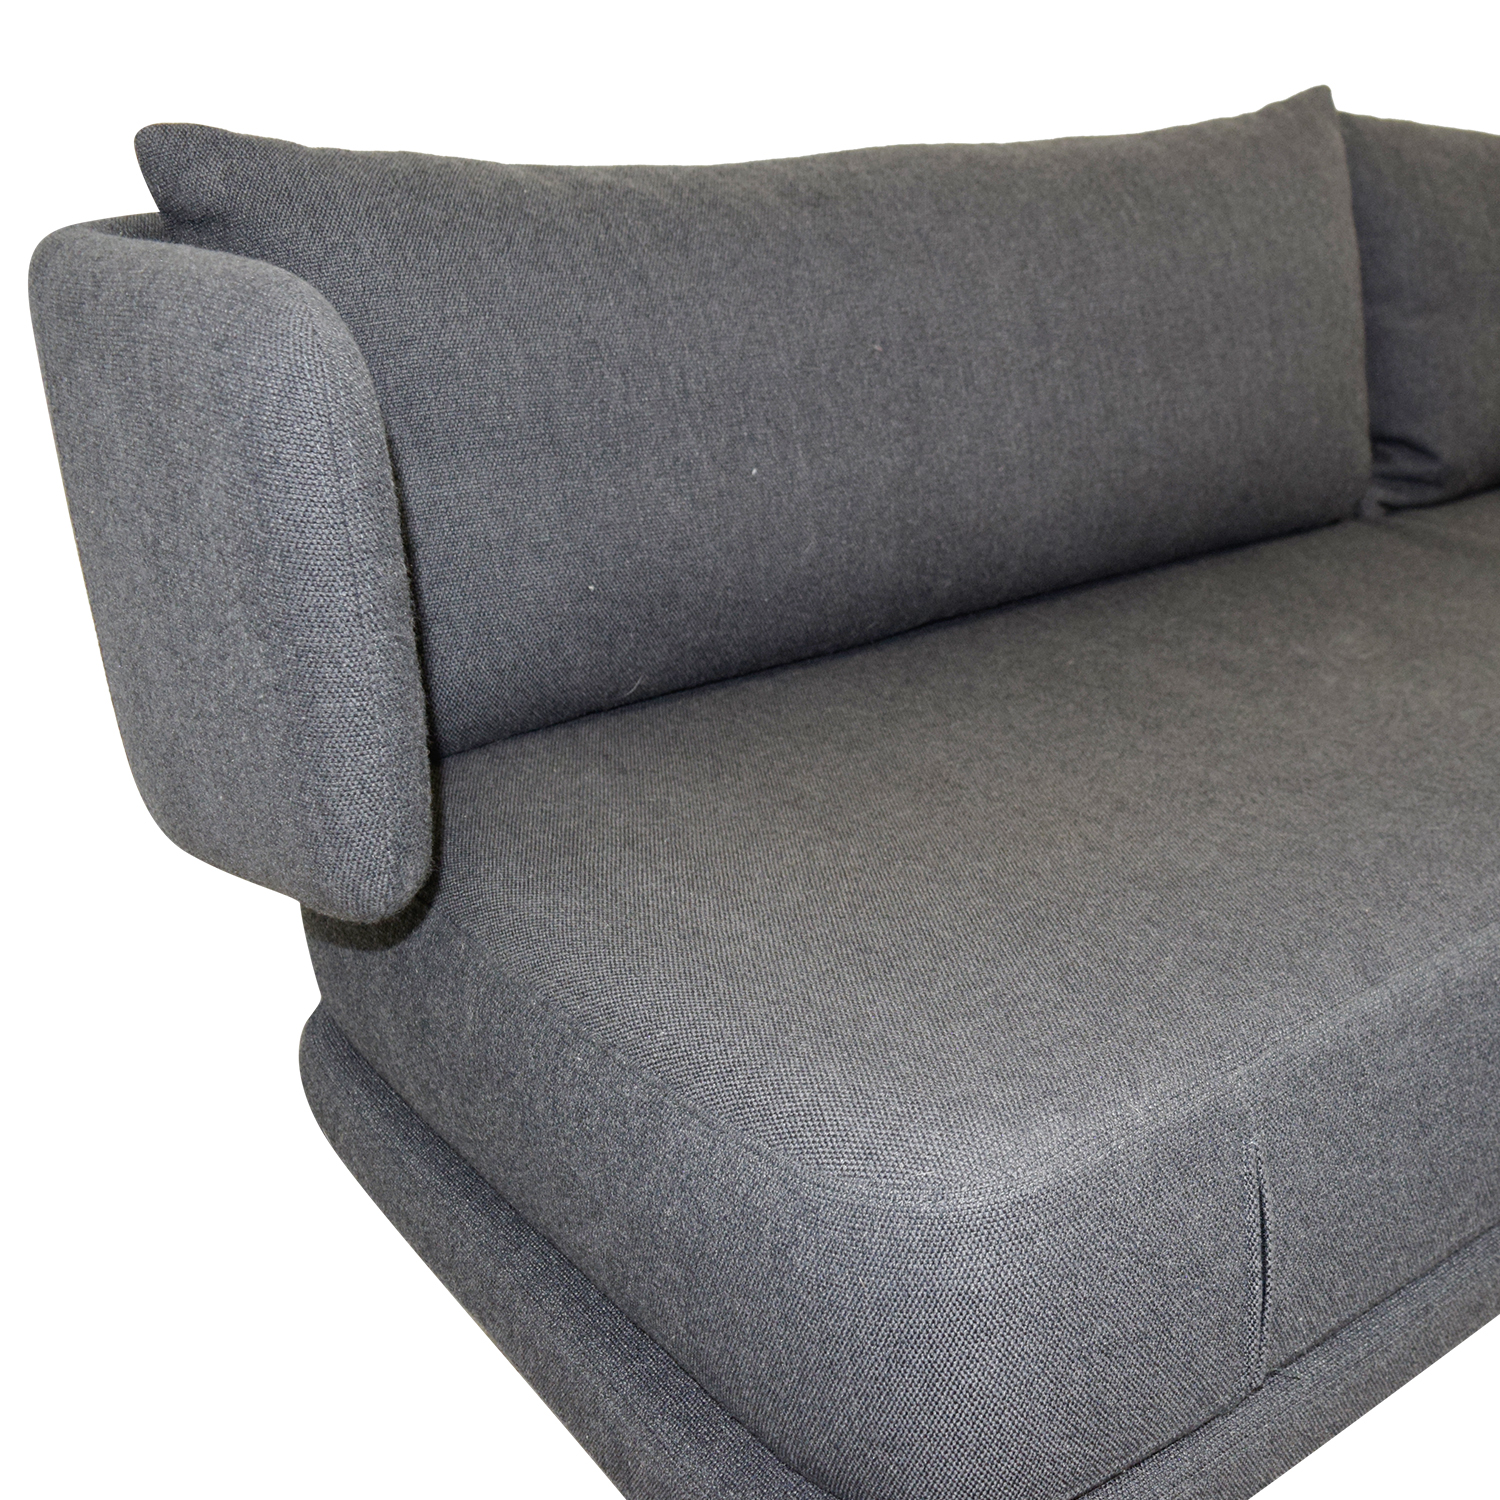 dwr bay sleeper sofa review mini end of bed 74 off design within reach charcoal